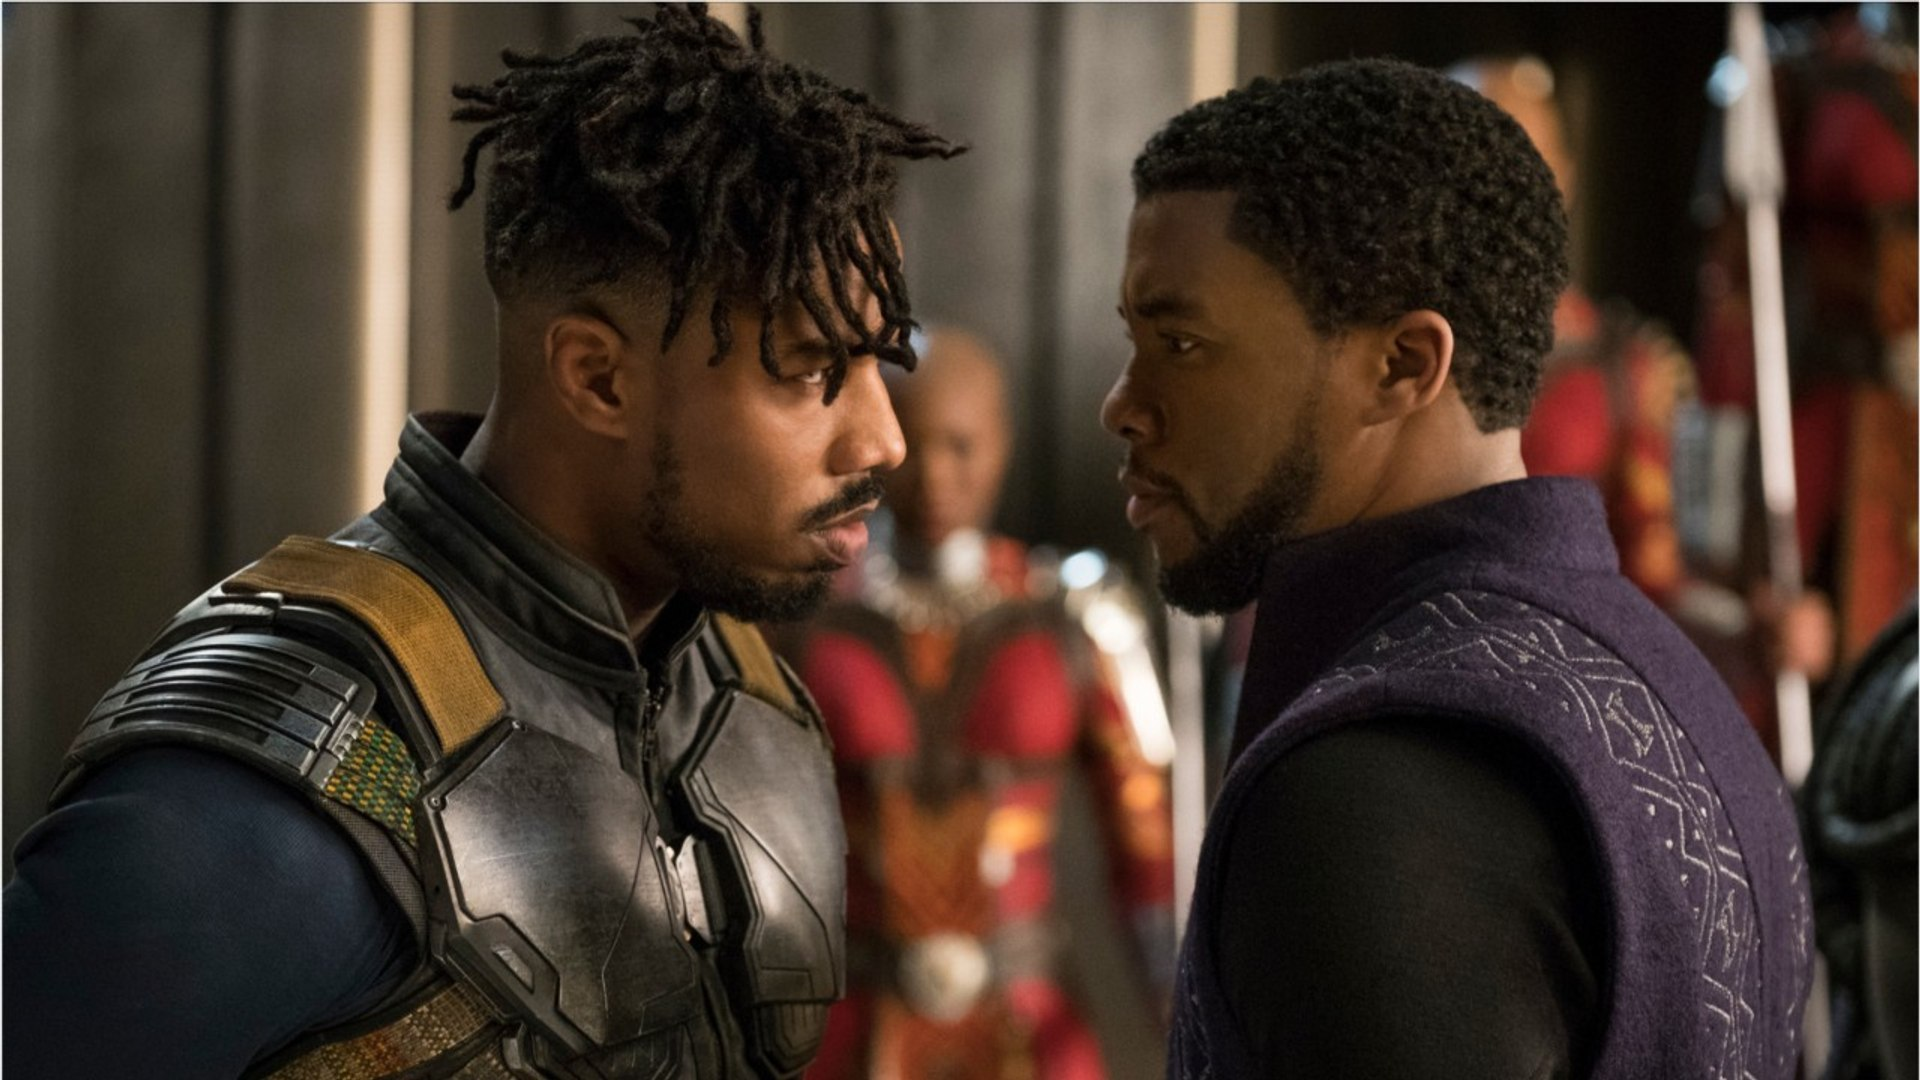 'Black Panther' Star Chadwick Boseman Confirmed Marvel Wants A 'Best Picture' Os